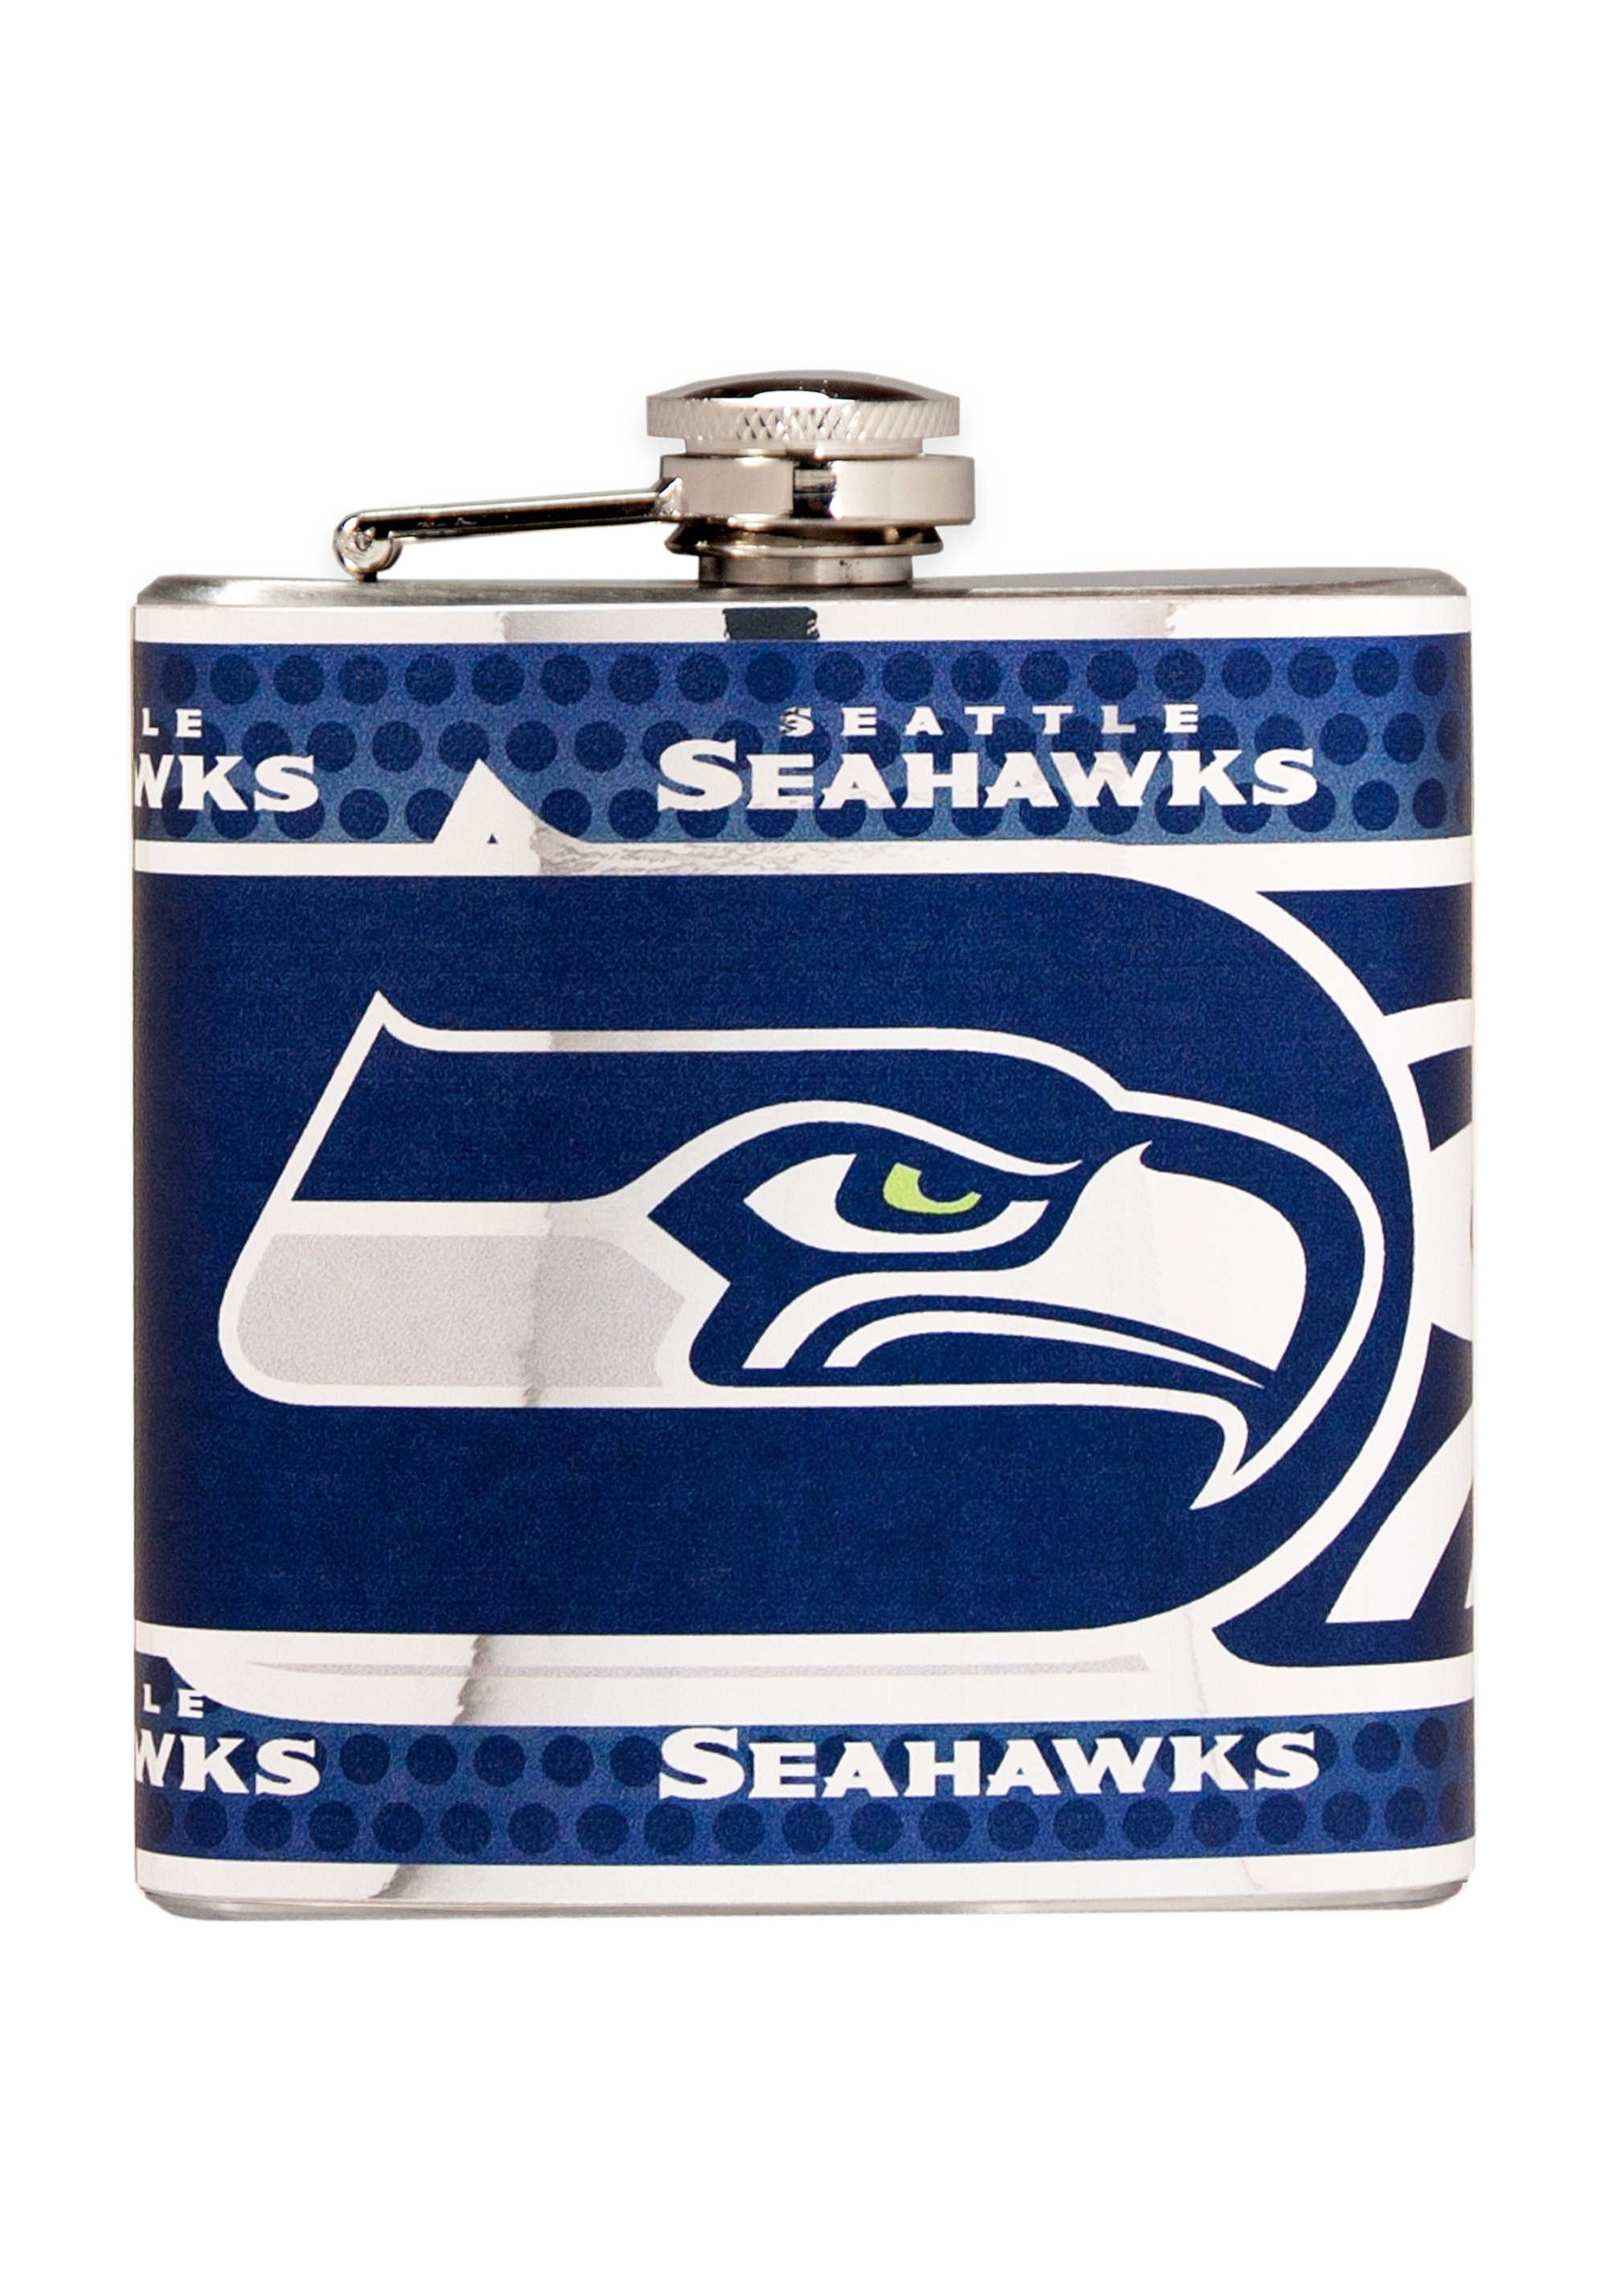 NFL Seattle Seahawks 6 oz. Stainless Steel Flask w/ Metallic Graphics